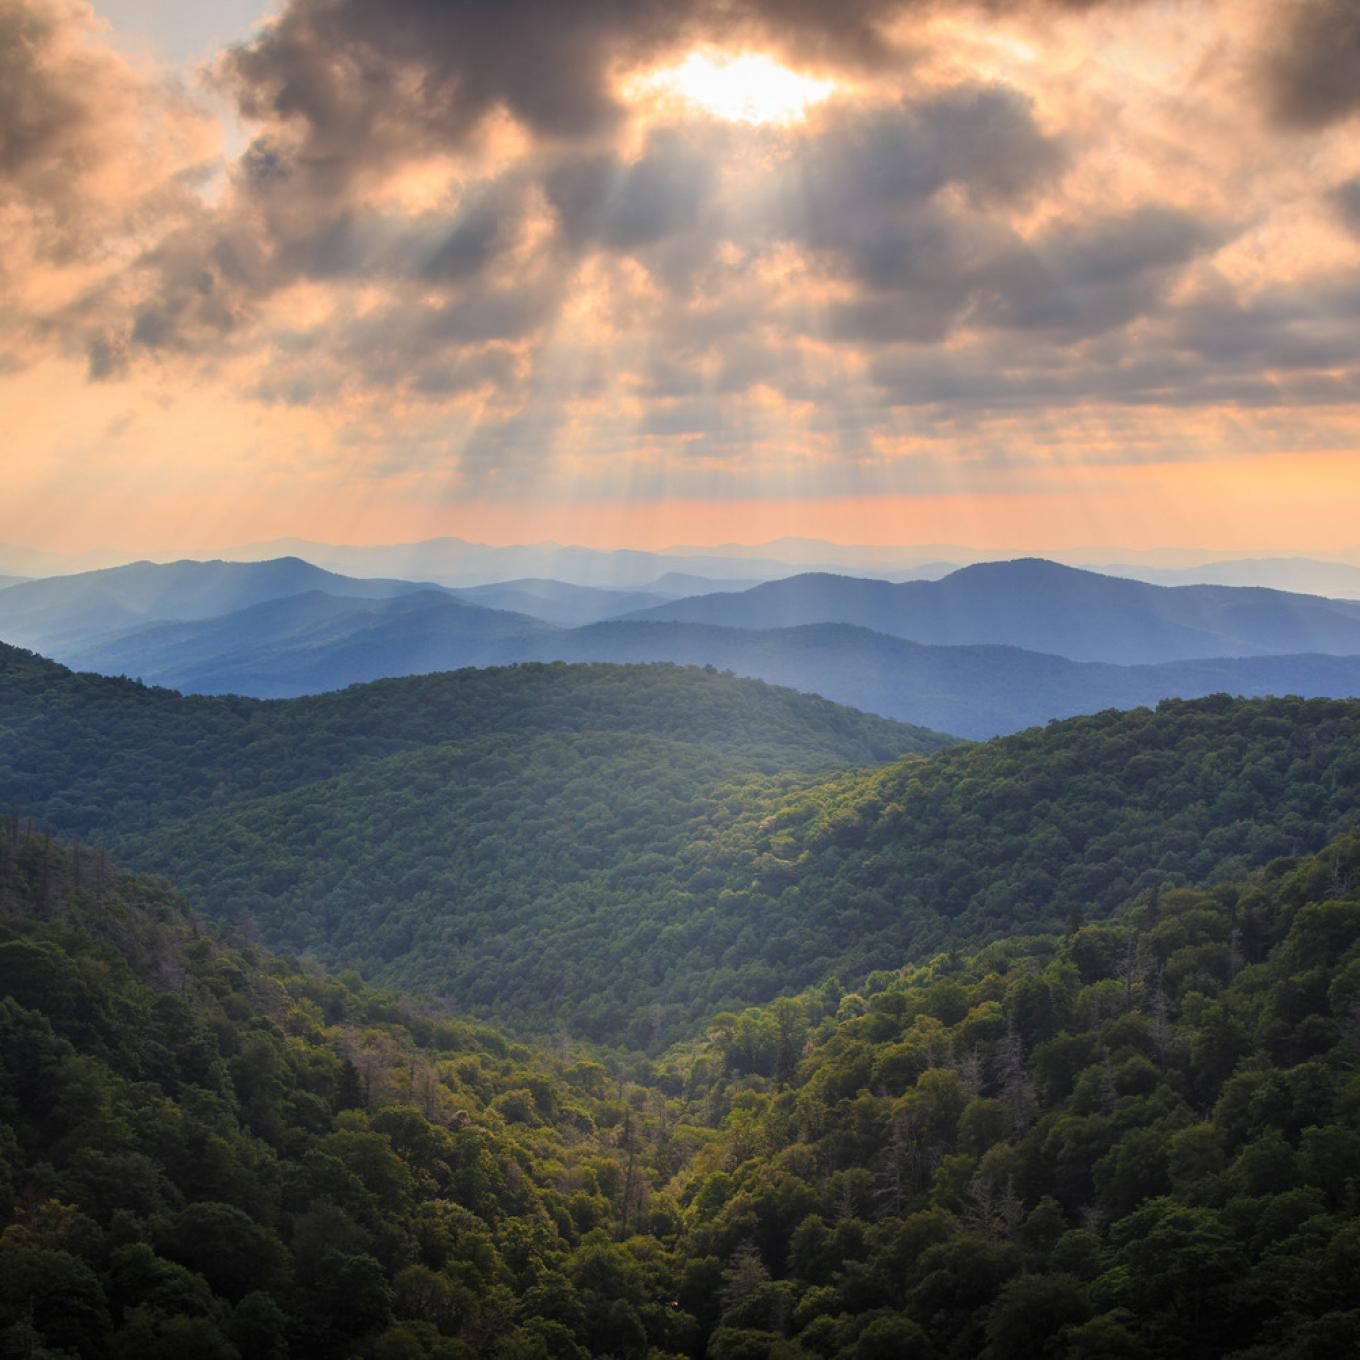 The Blue Ridge Mountains in North Carolina